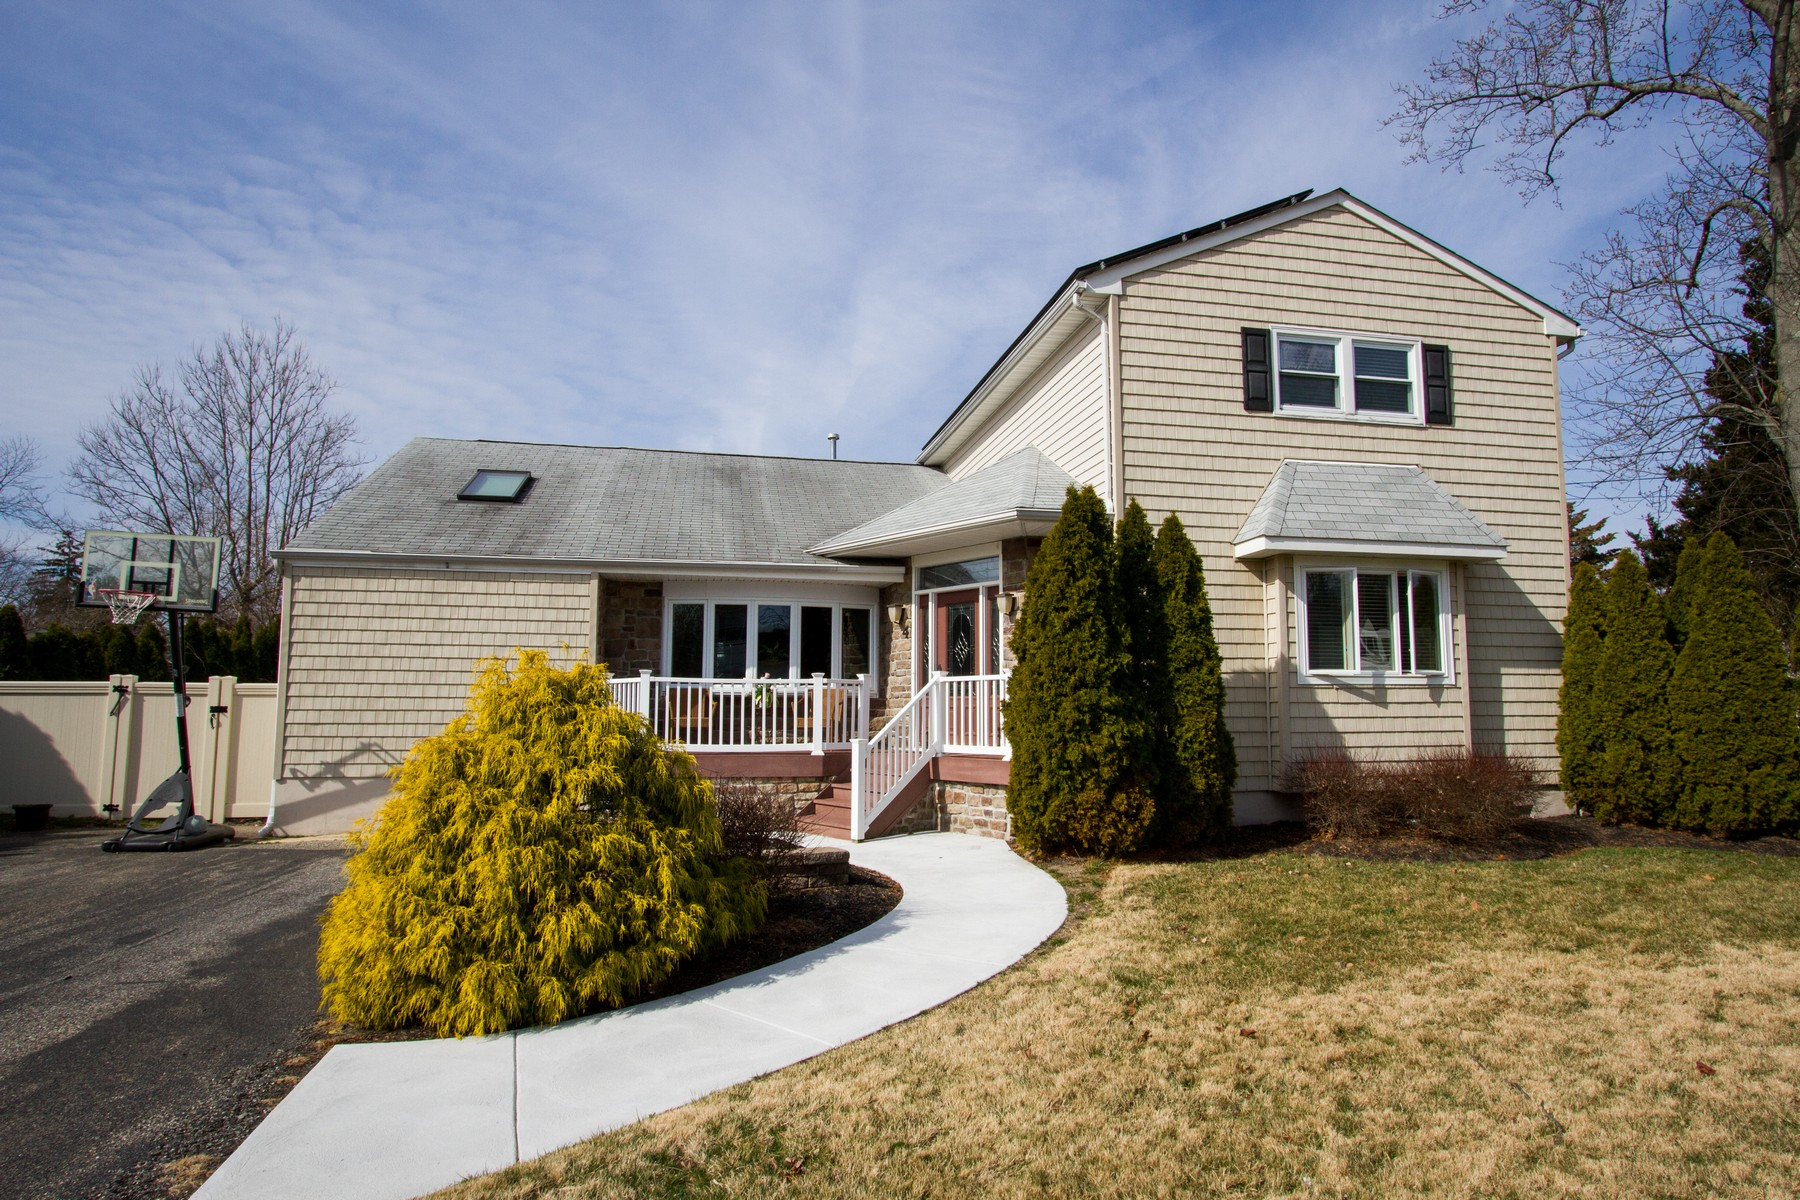 Single Family Home for Sale at Beautifully Appointed 4 Branch Road Ocean, New Jersey 07712 United States